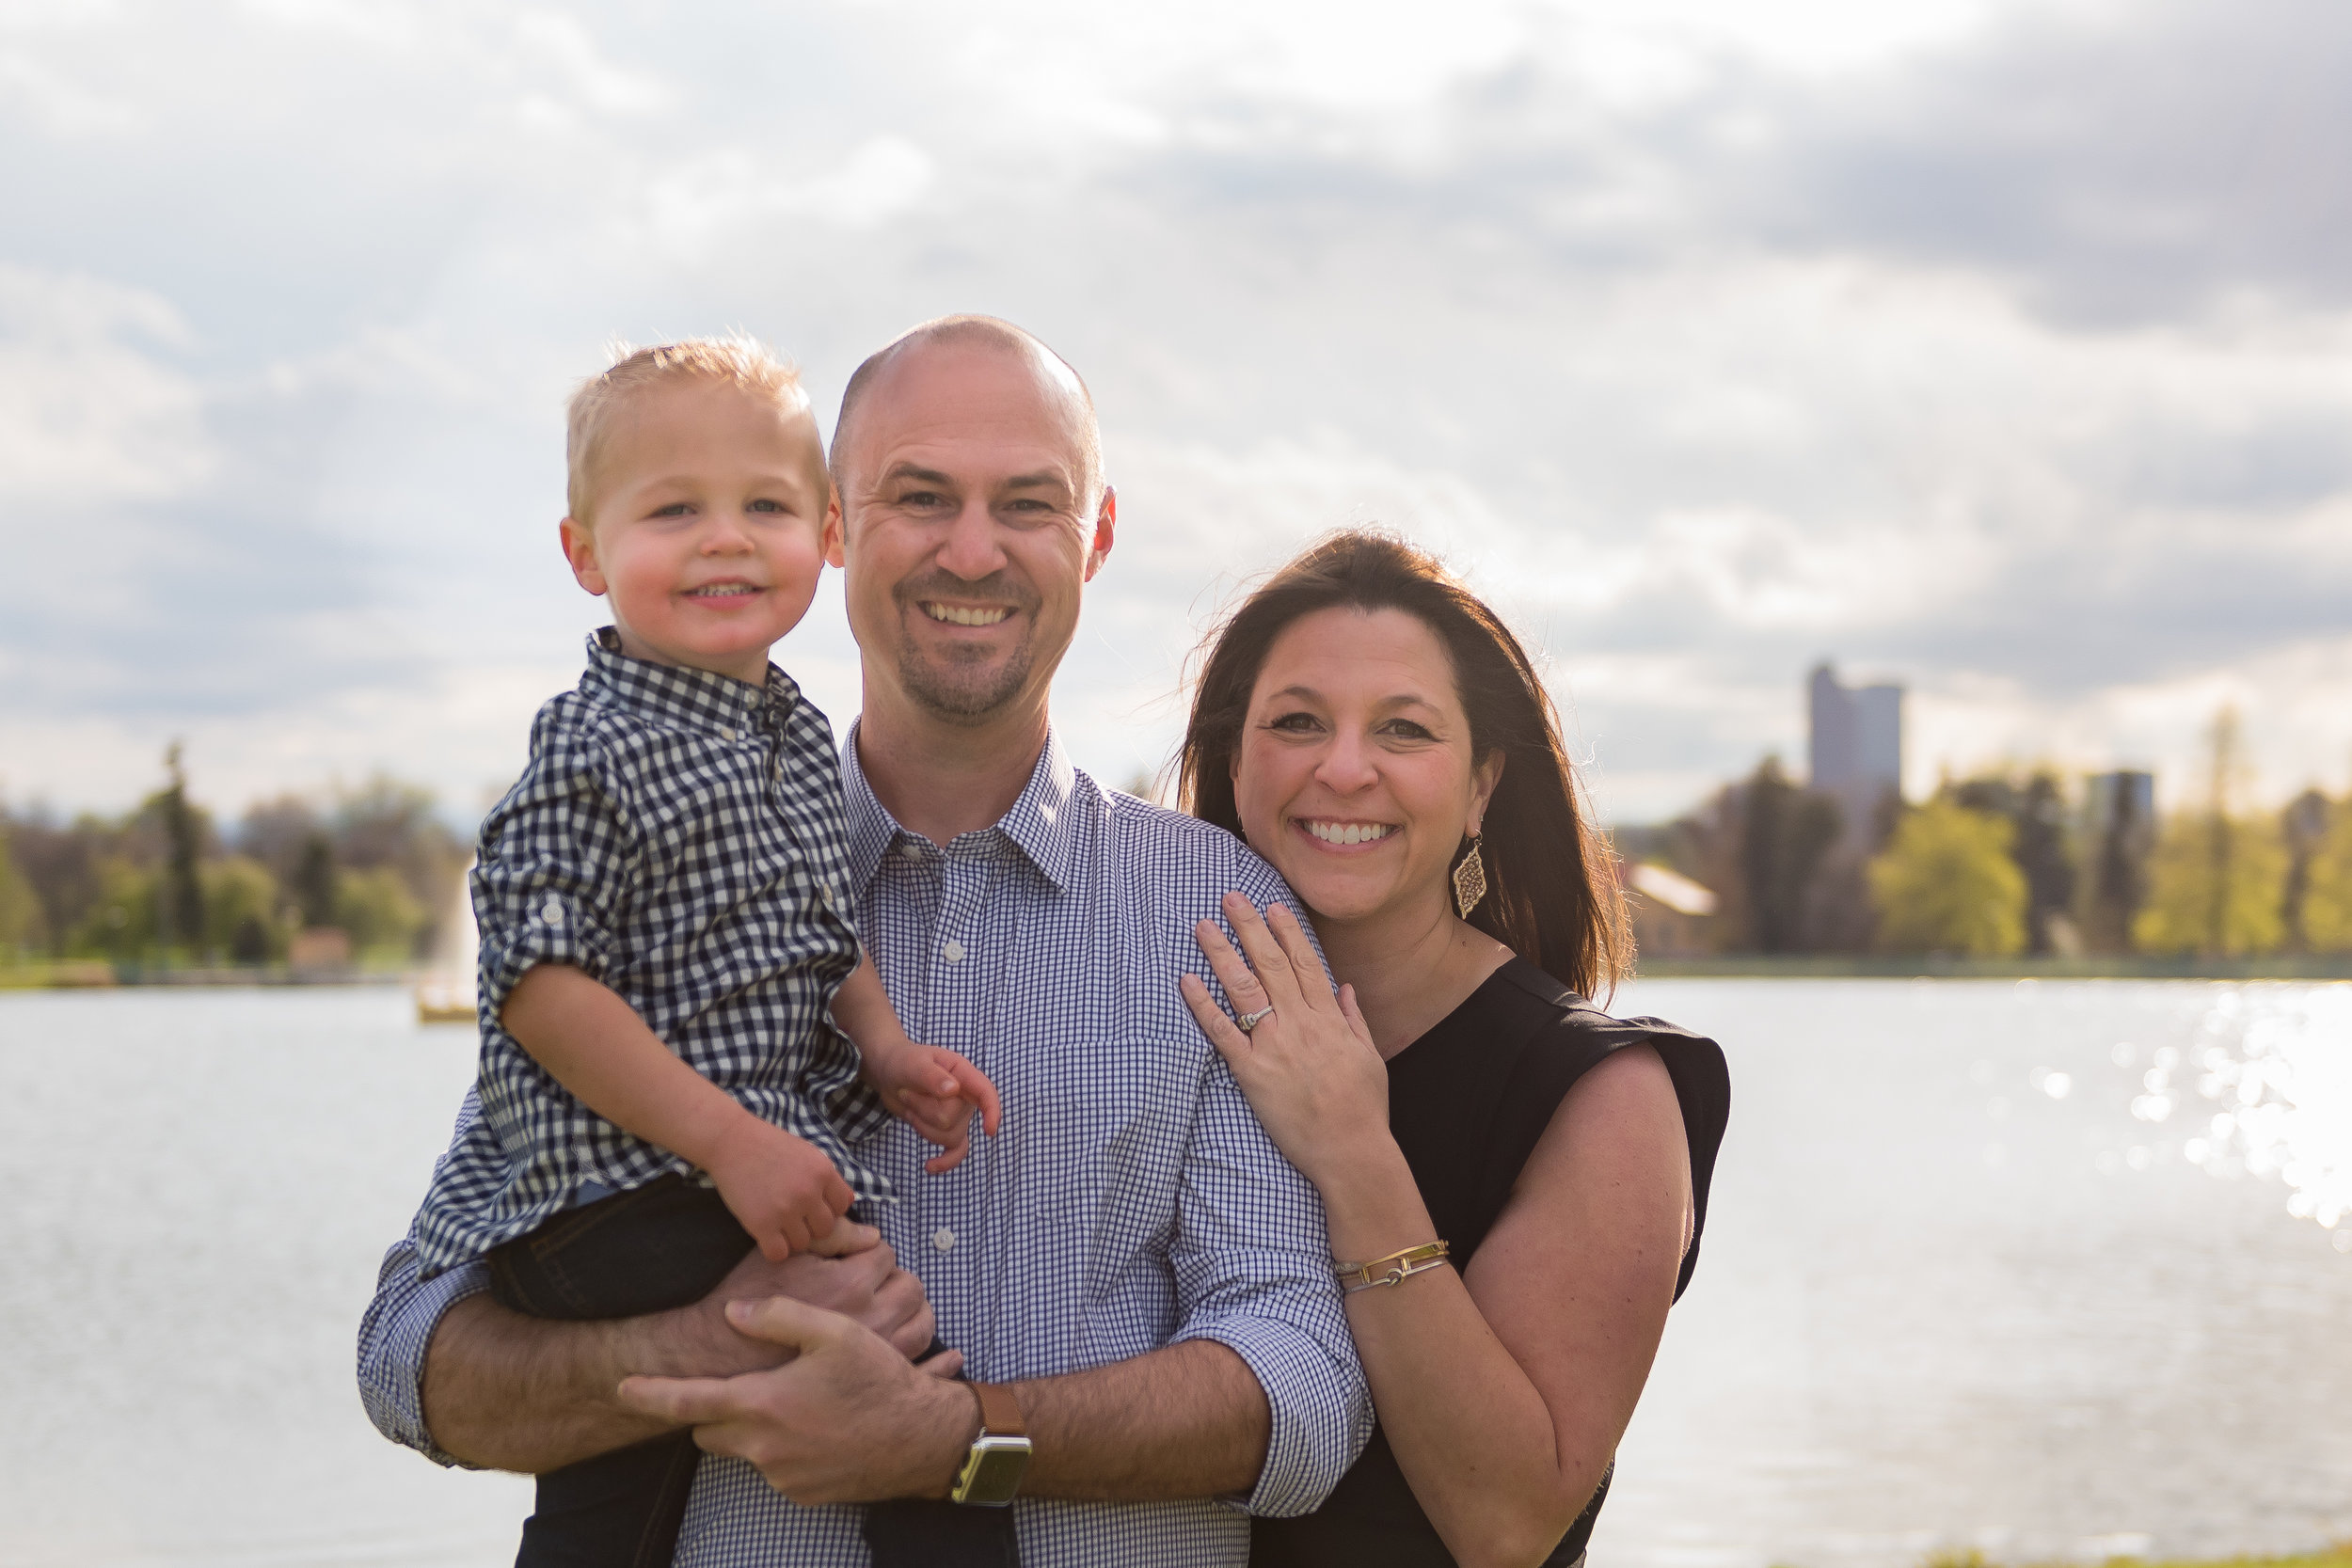 Hochstadt-Christopher Family Session '2019 -53.jpg